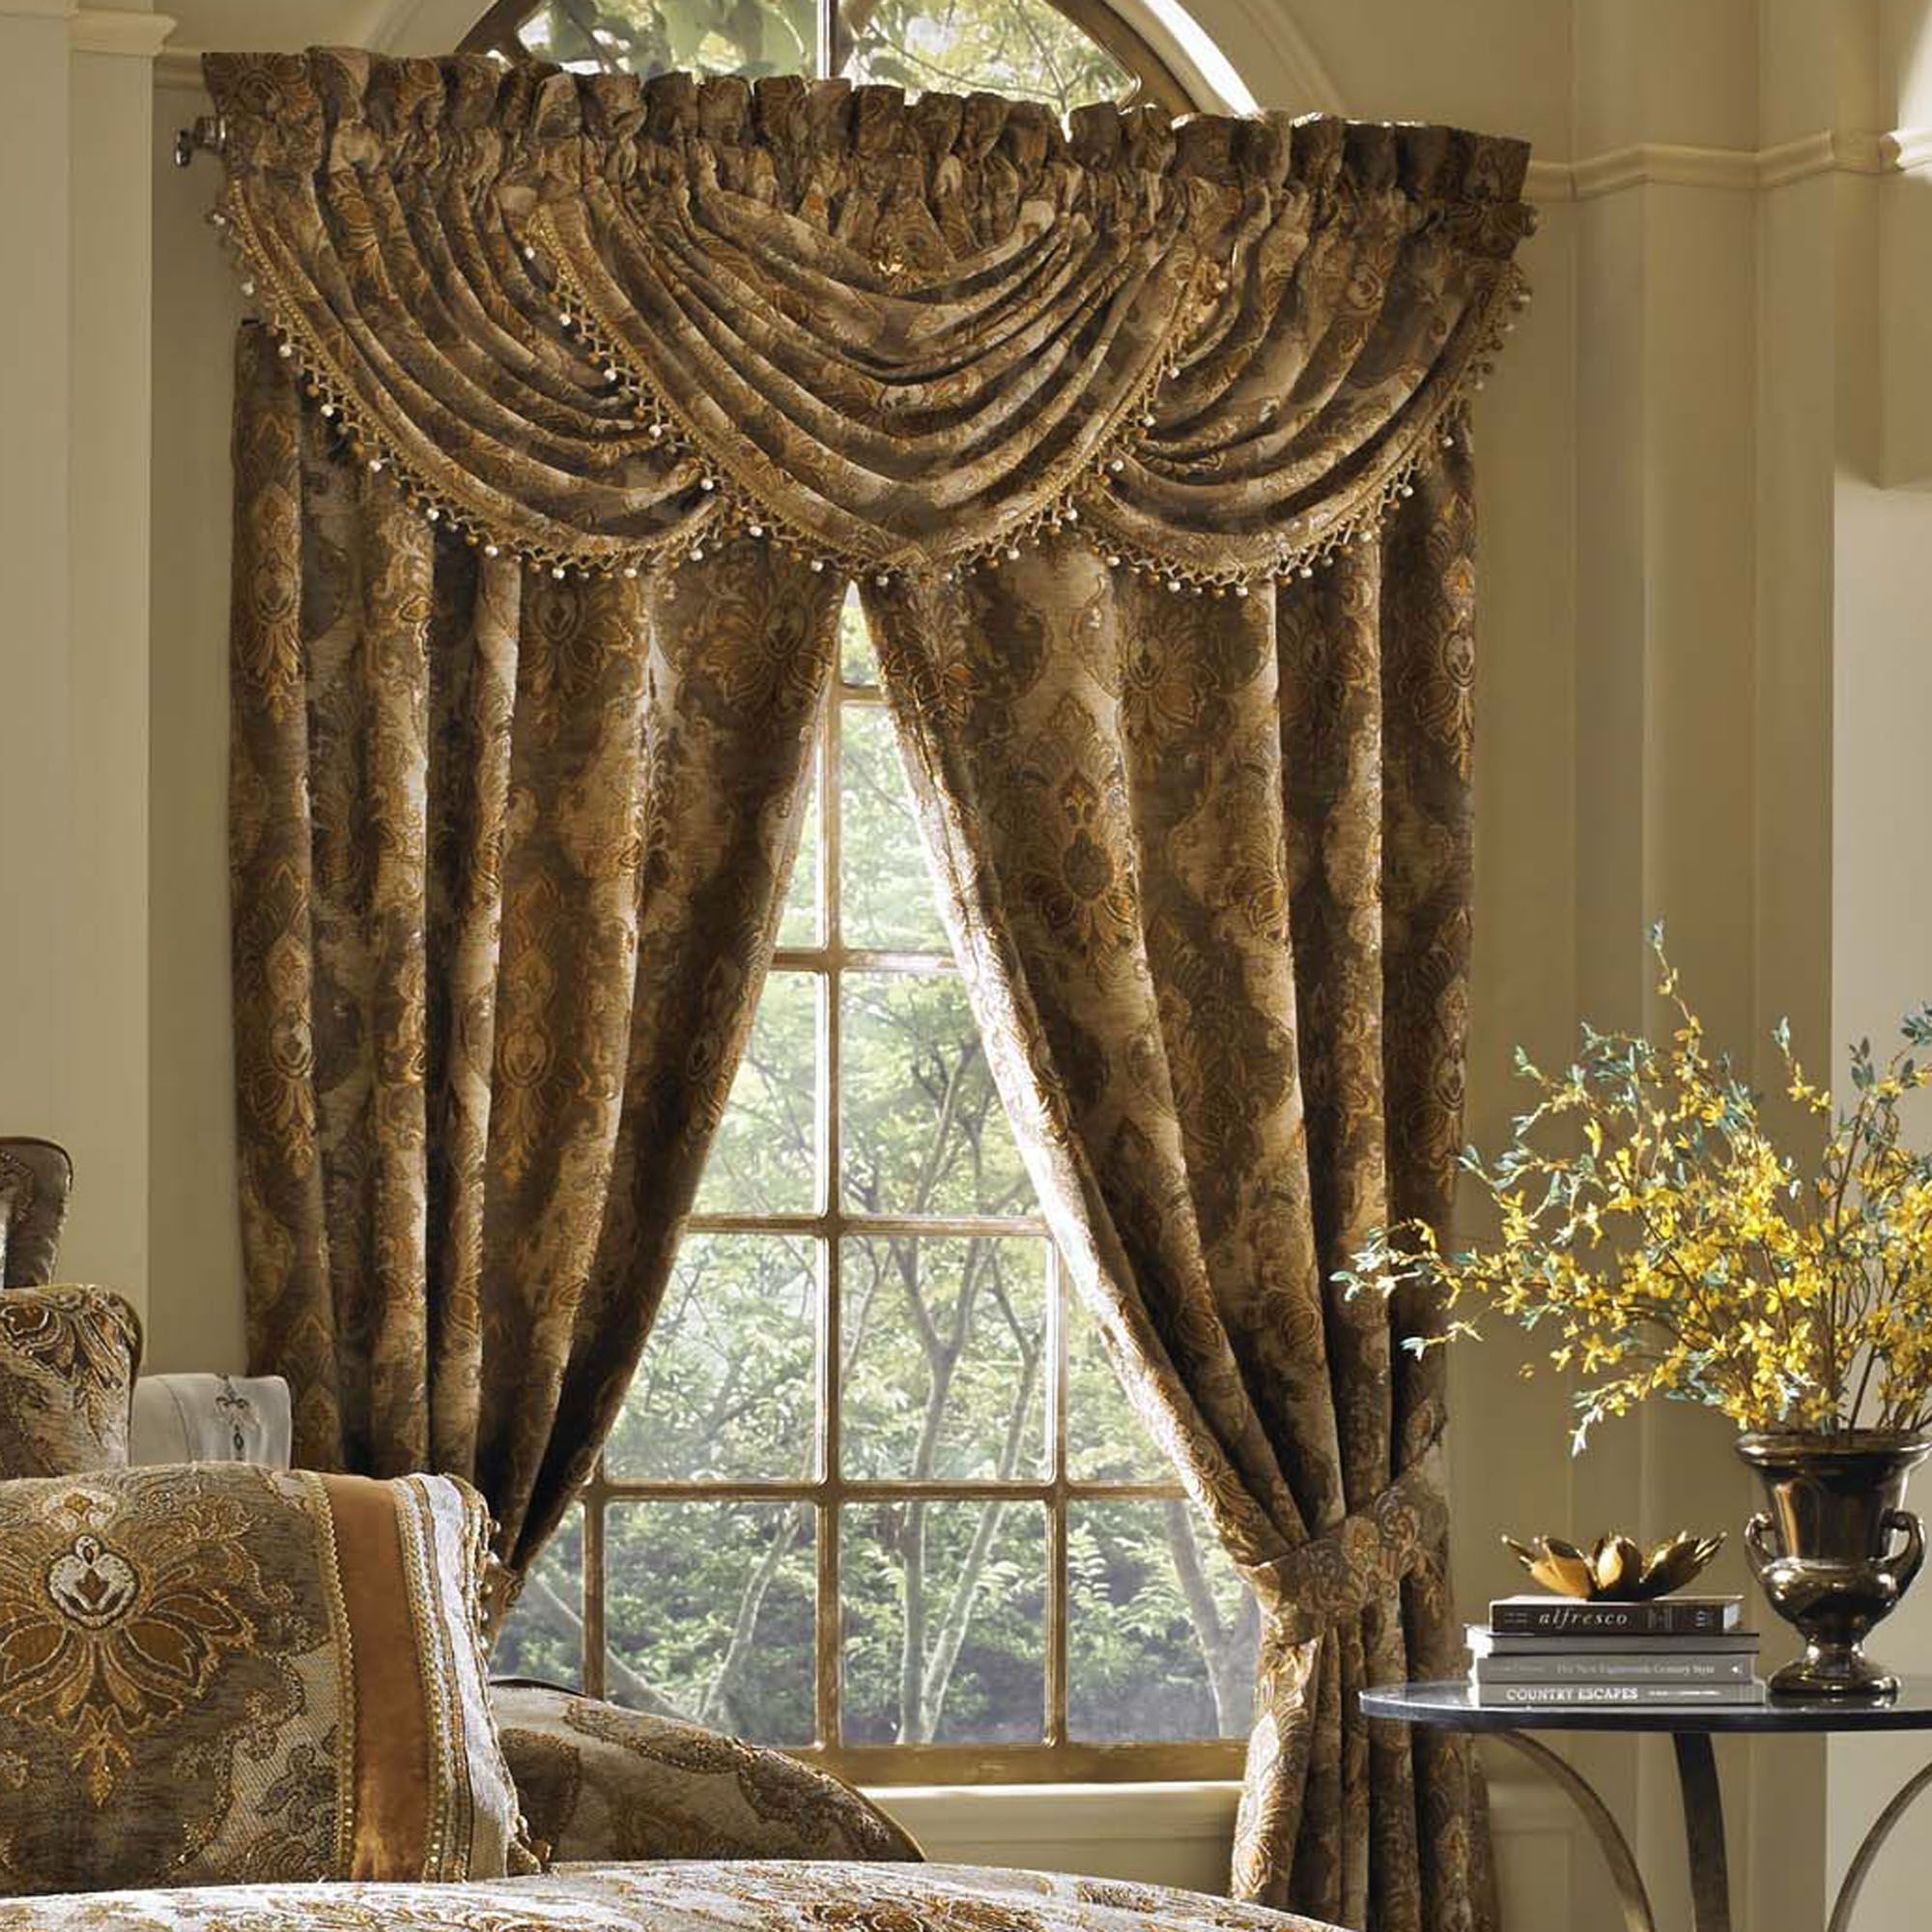 by new window york treatment j damasks queen bradshaw curtains damask pin